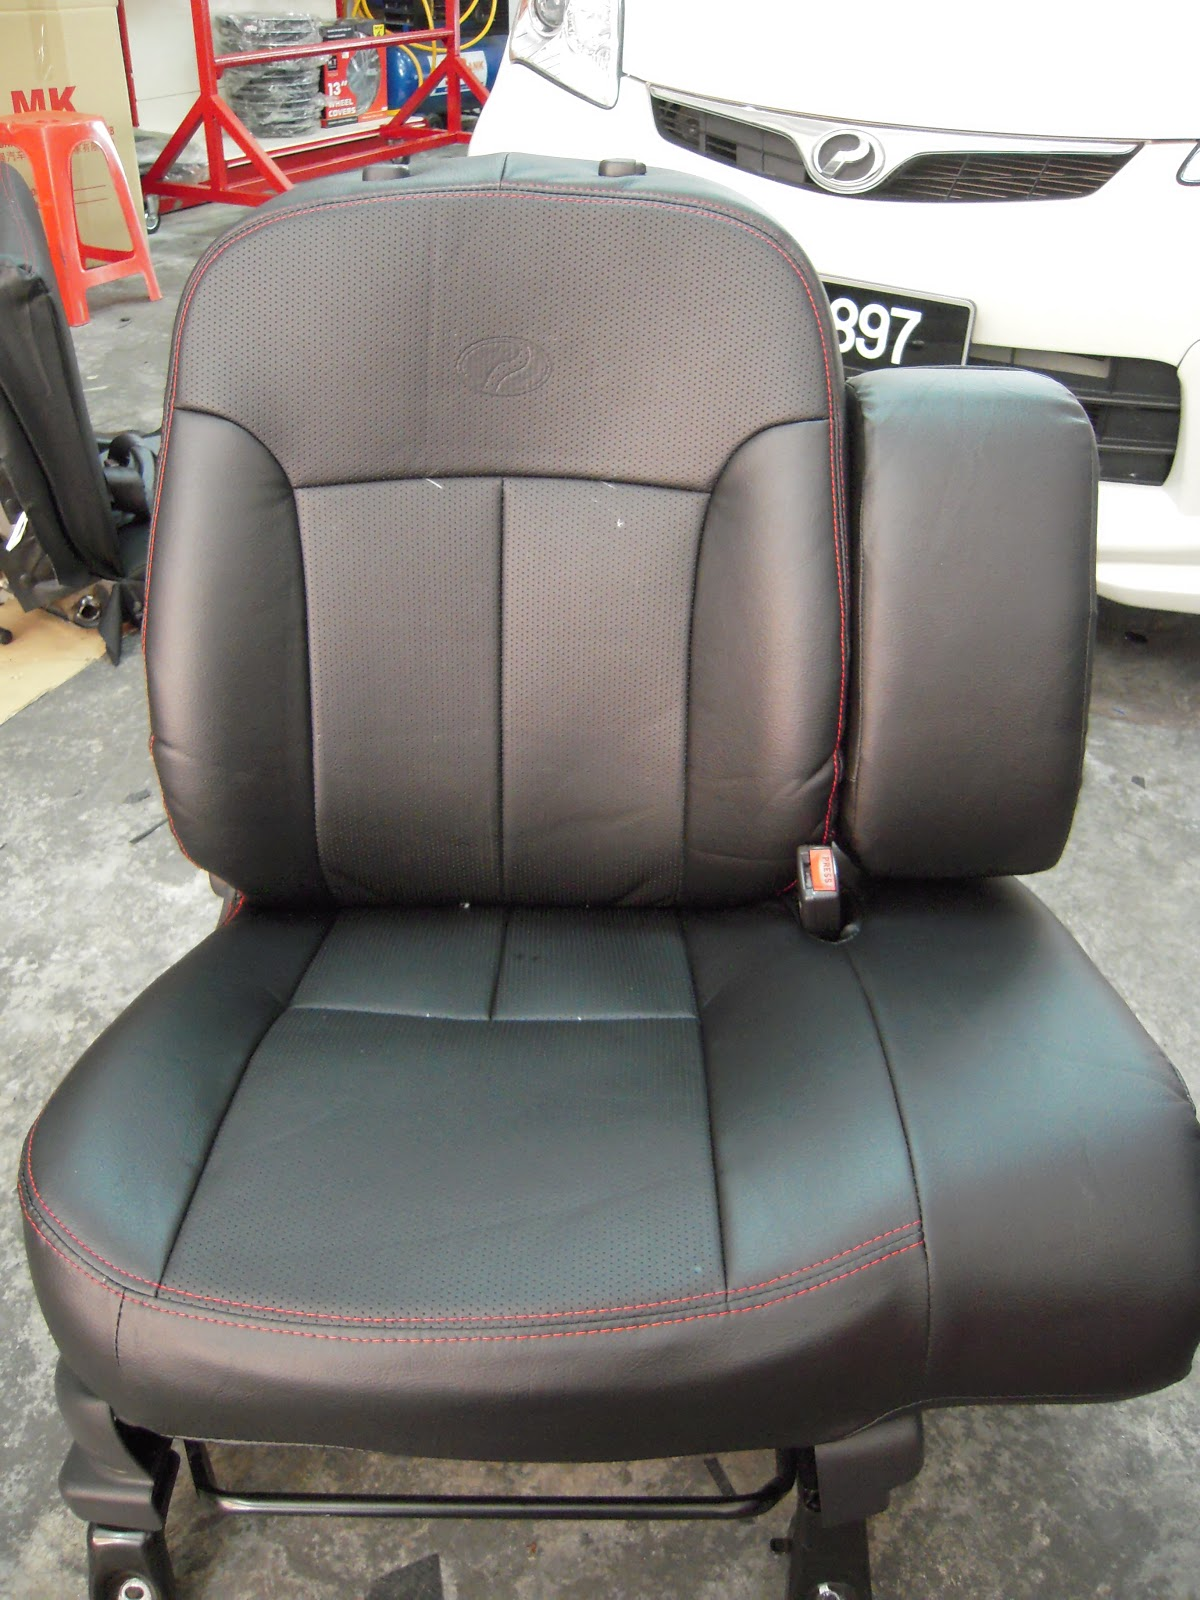 Tca Audio Car Accessories Alza Seat Cover